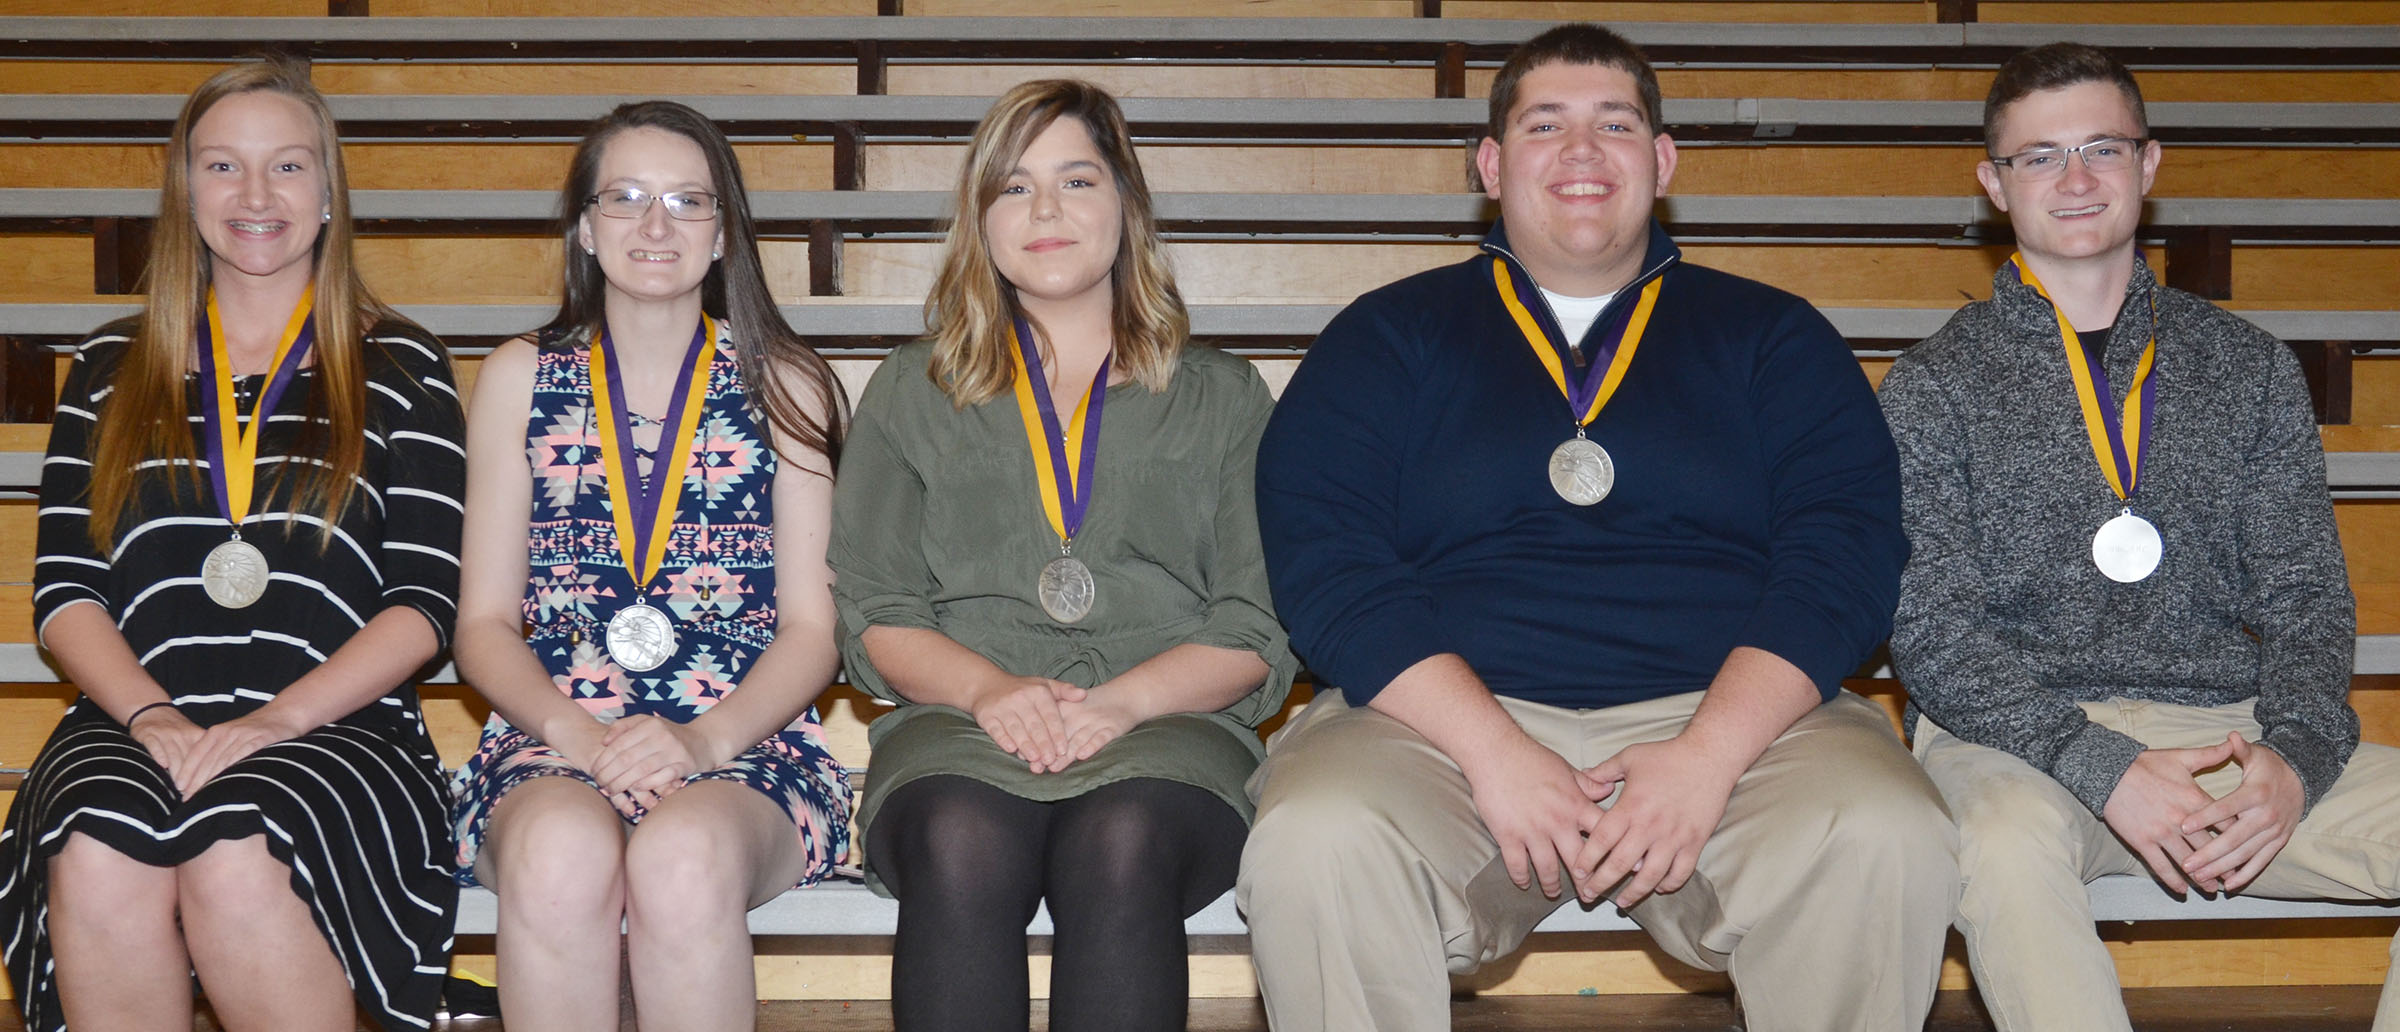 CHS juniors honored at this year's Top 10 percent banquet are, from left, Madison Dial, Kimberly Harden, Sara Farmer, Ryan Wiedewitsch and Bryce Richardson. Absent are Alex Doss and Samuel Kessler.